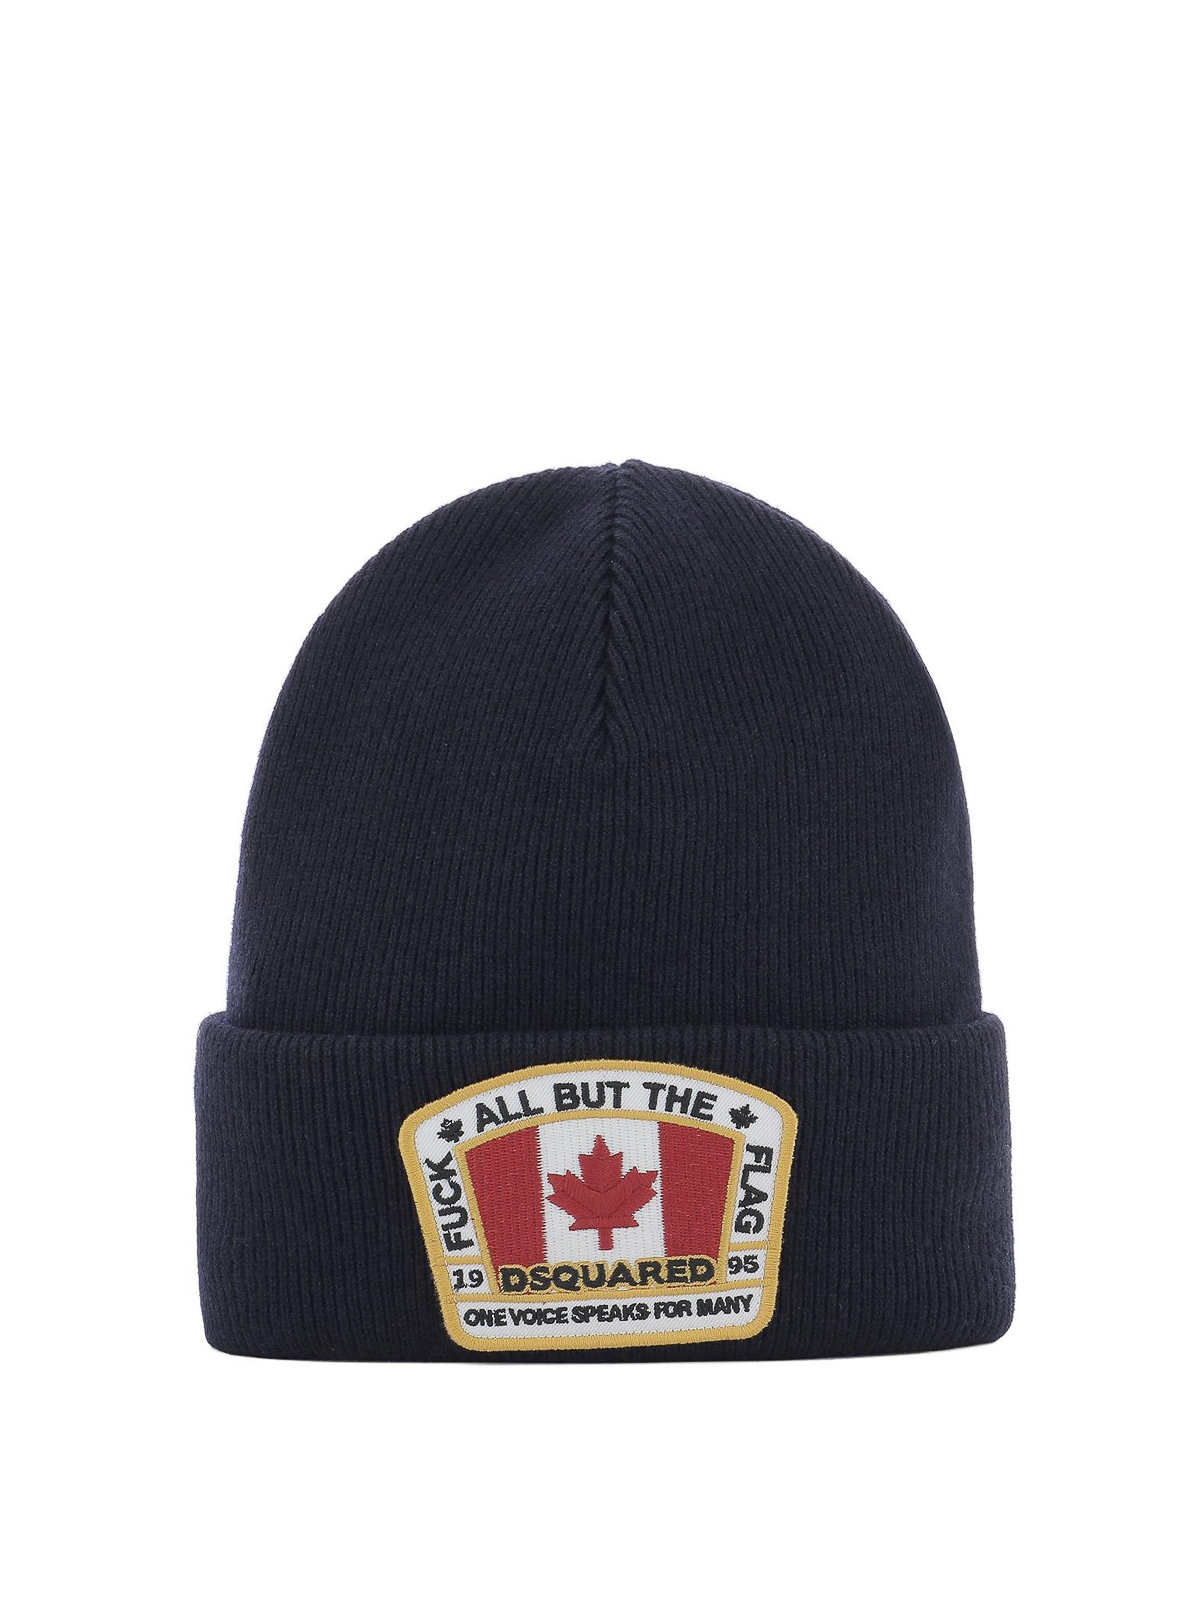 2b30c9fb7cf Dsquared2 - Logo patch blue ribbed wool beanie - beanies ...